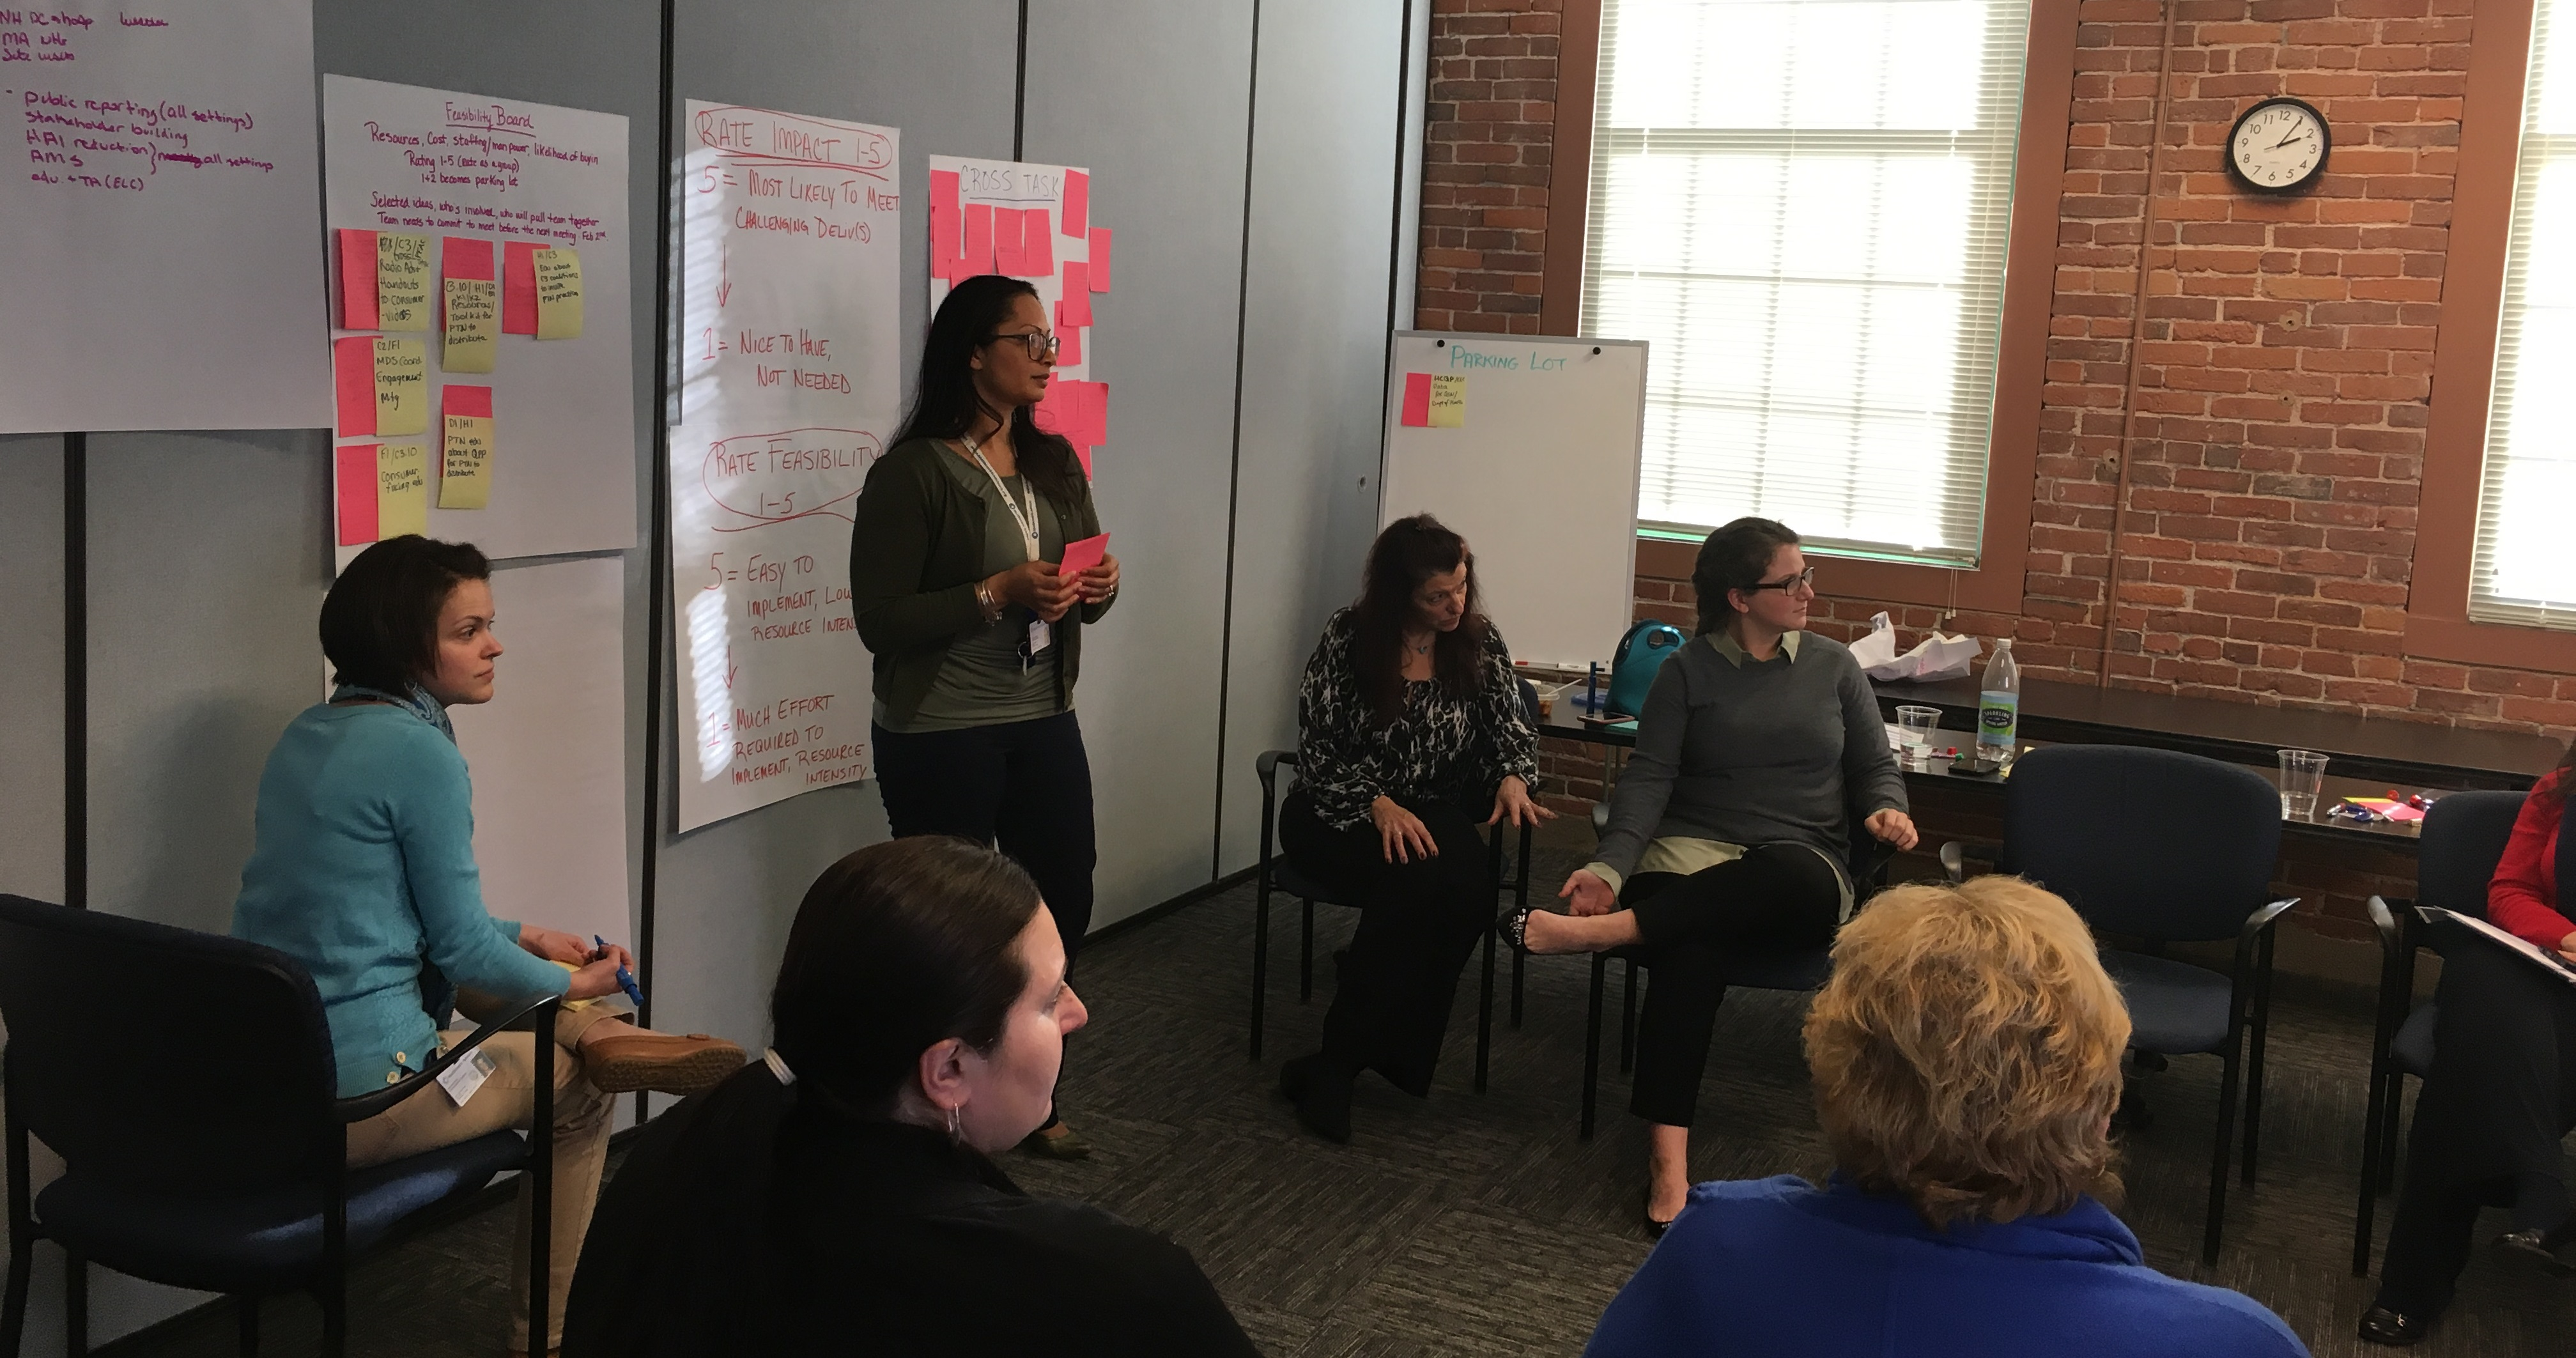 Associates working in cross-setting brainstorming meeting to identify opportunities to collaborate